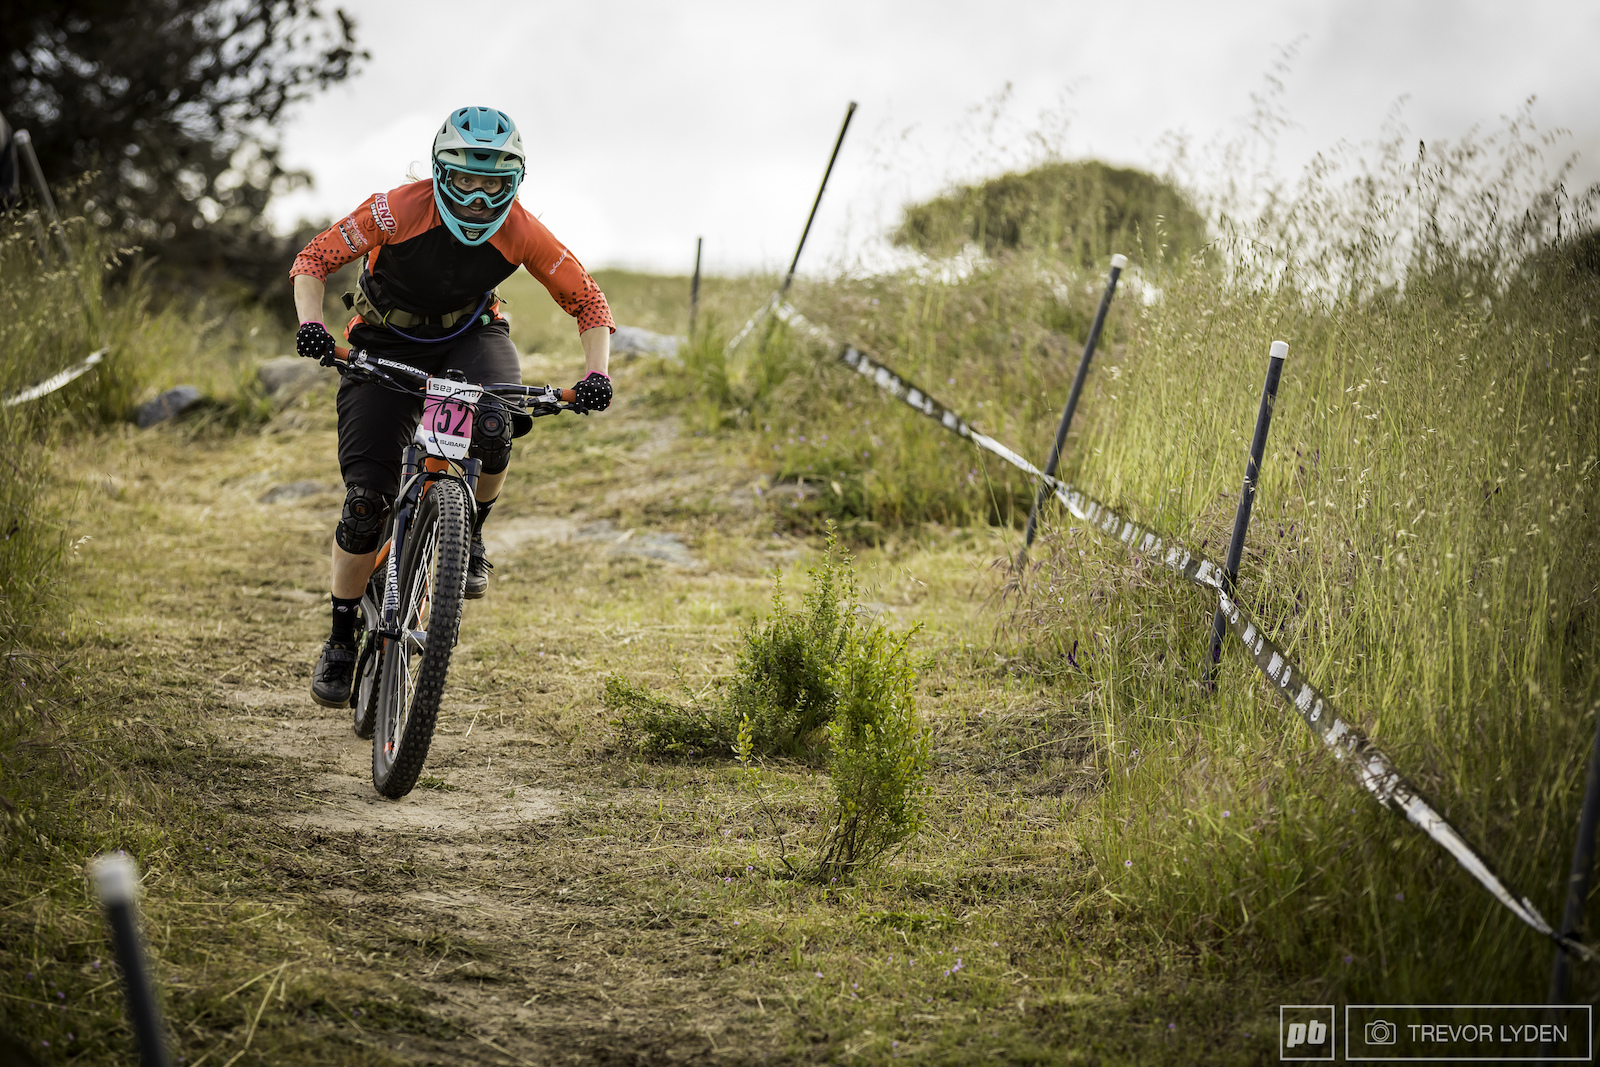 The Sea Otter enduro course is known to be a bit pedal heavy fortunately Ileana Anderson didn t seem to mind.